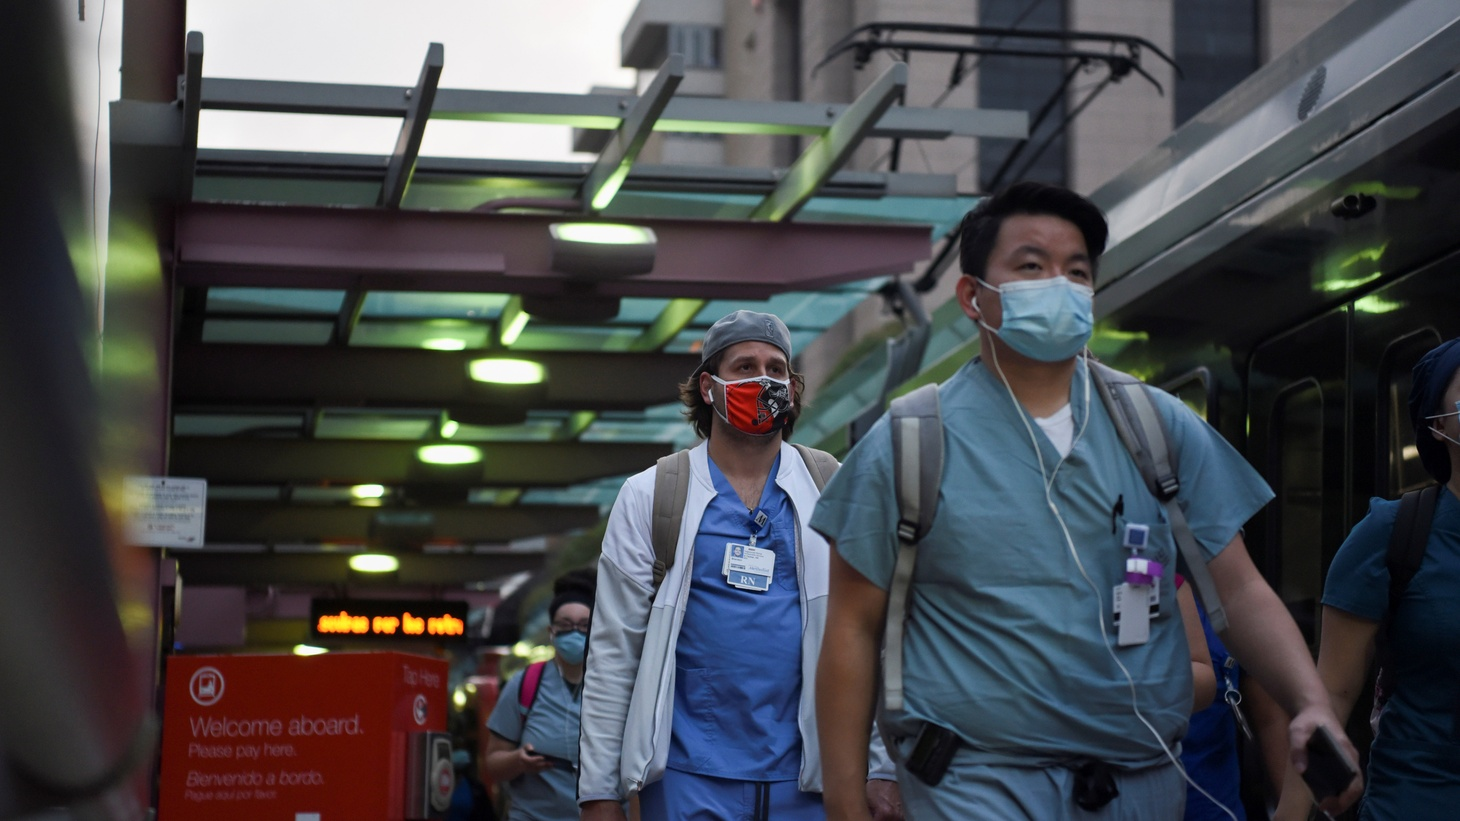 Healthcare workers walk through the Texas Medical Center during a shift change as cases of the coronavirus disease (COVID-19) spike in Houston, Texas, U.S., July 8, 2020.